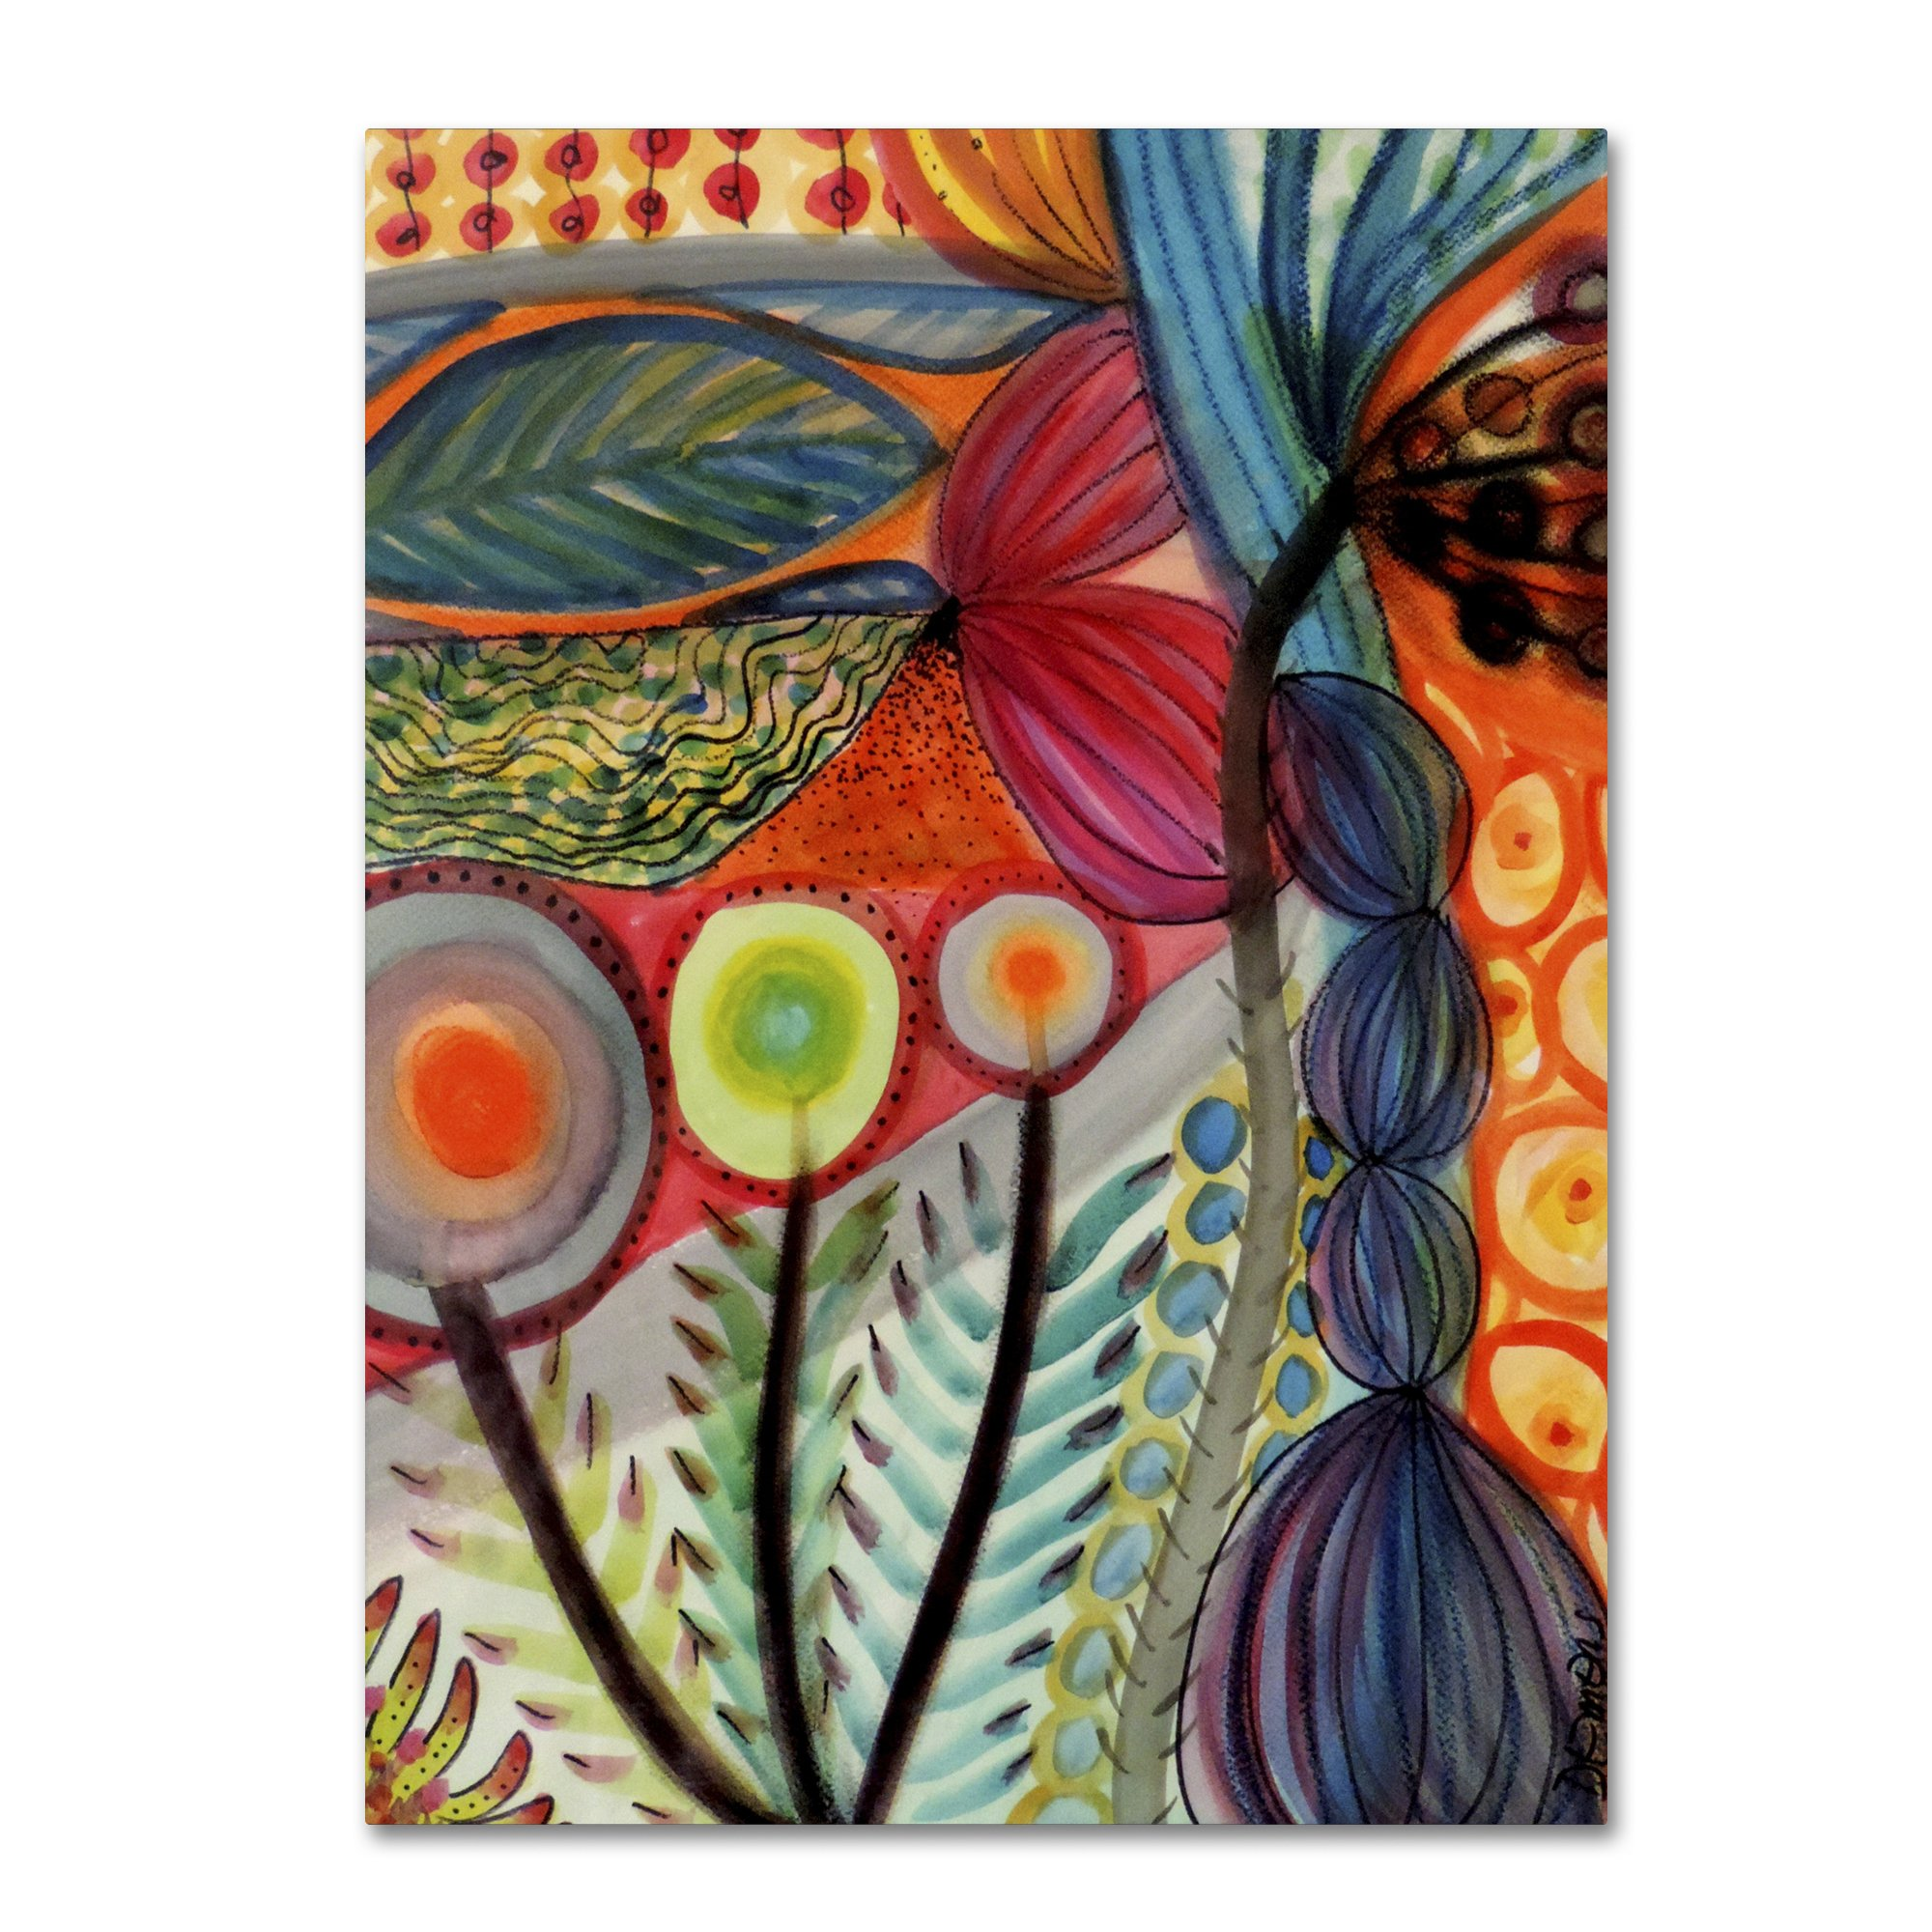 "Vivaces by Sylvie Demers Wall Hanging, 18"" x 24"" Canvas Wall Art"